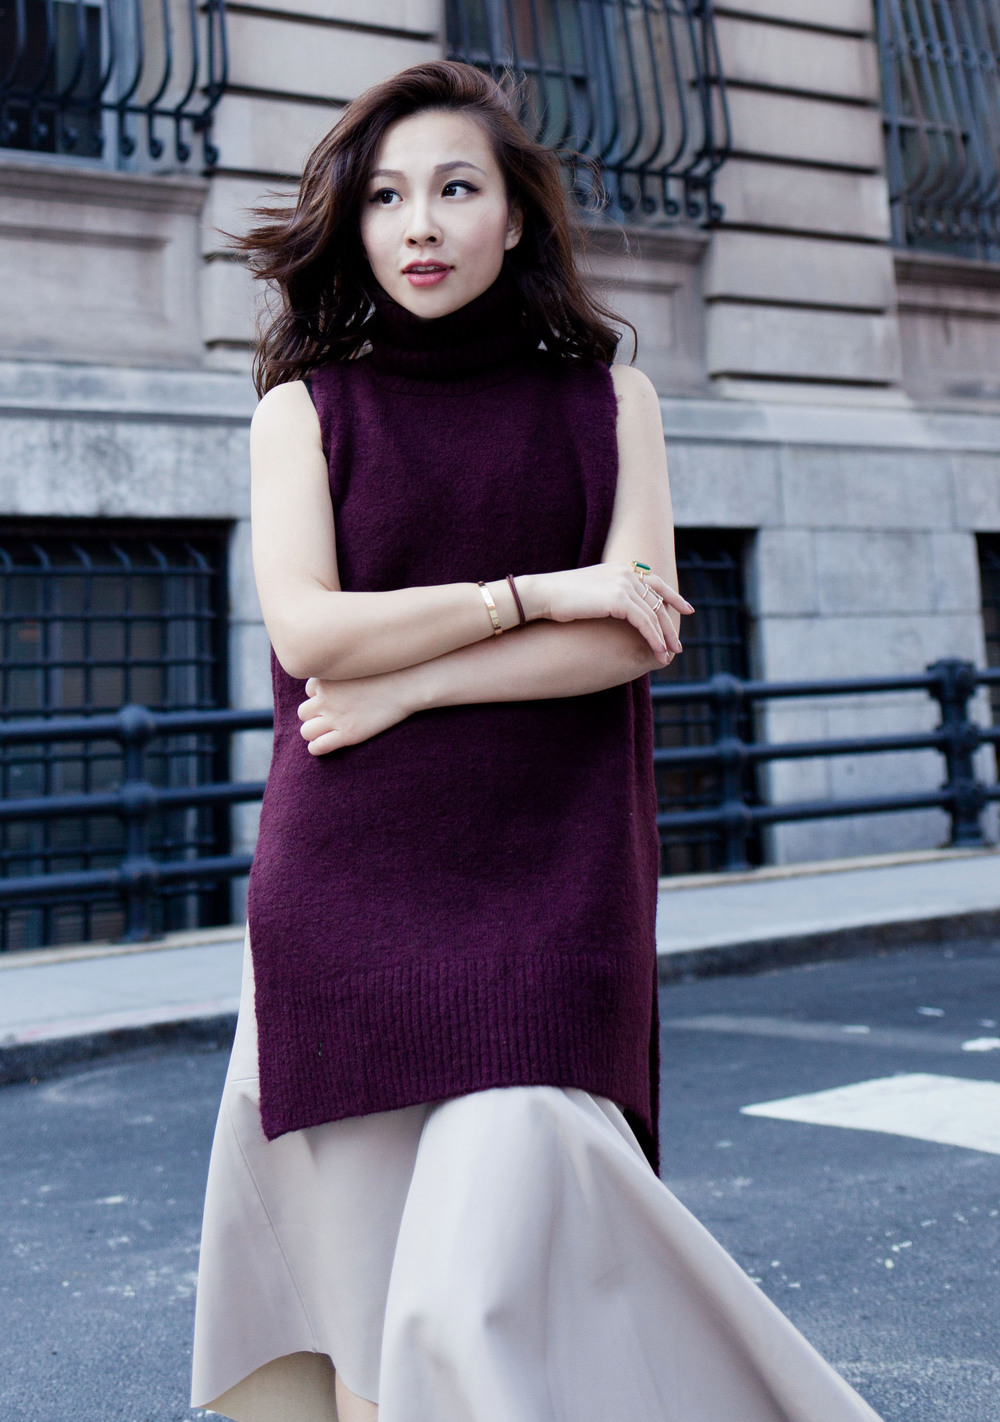 burgandy turtleneck sweater.jpg